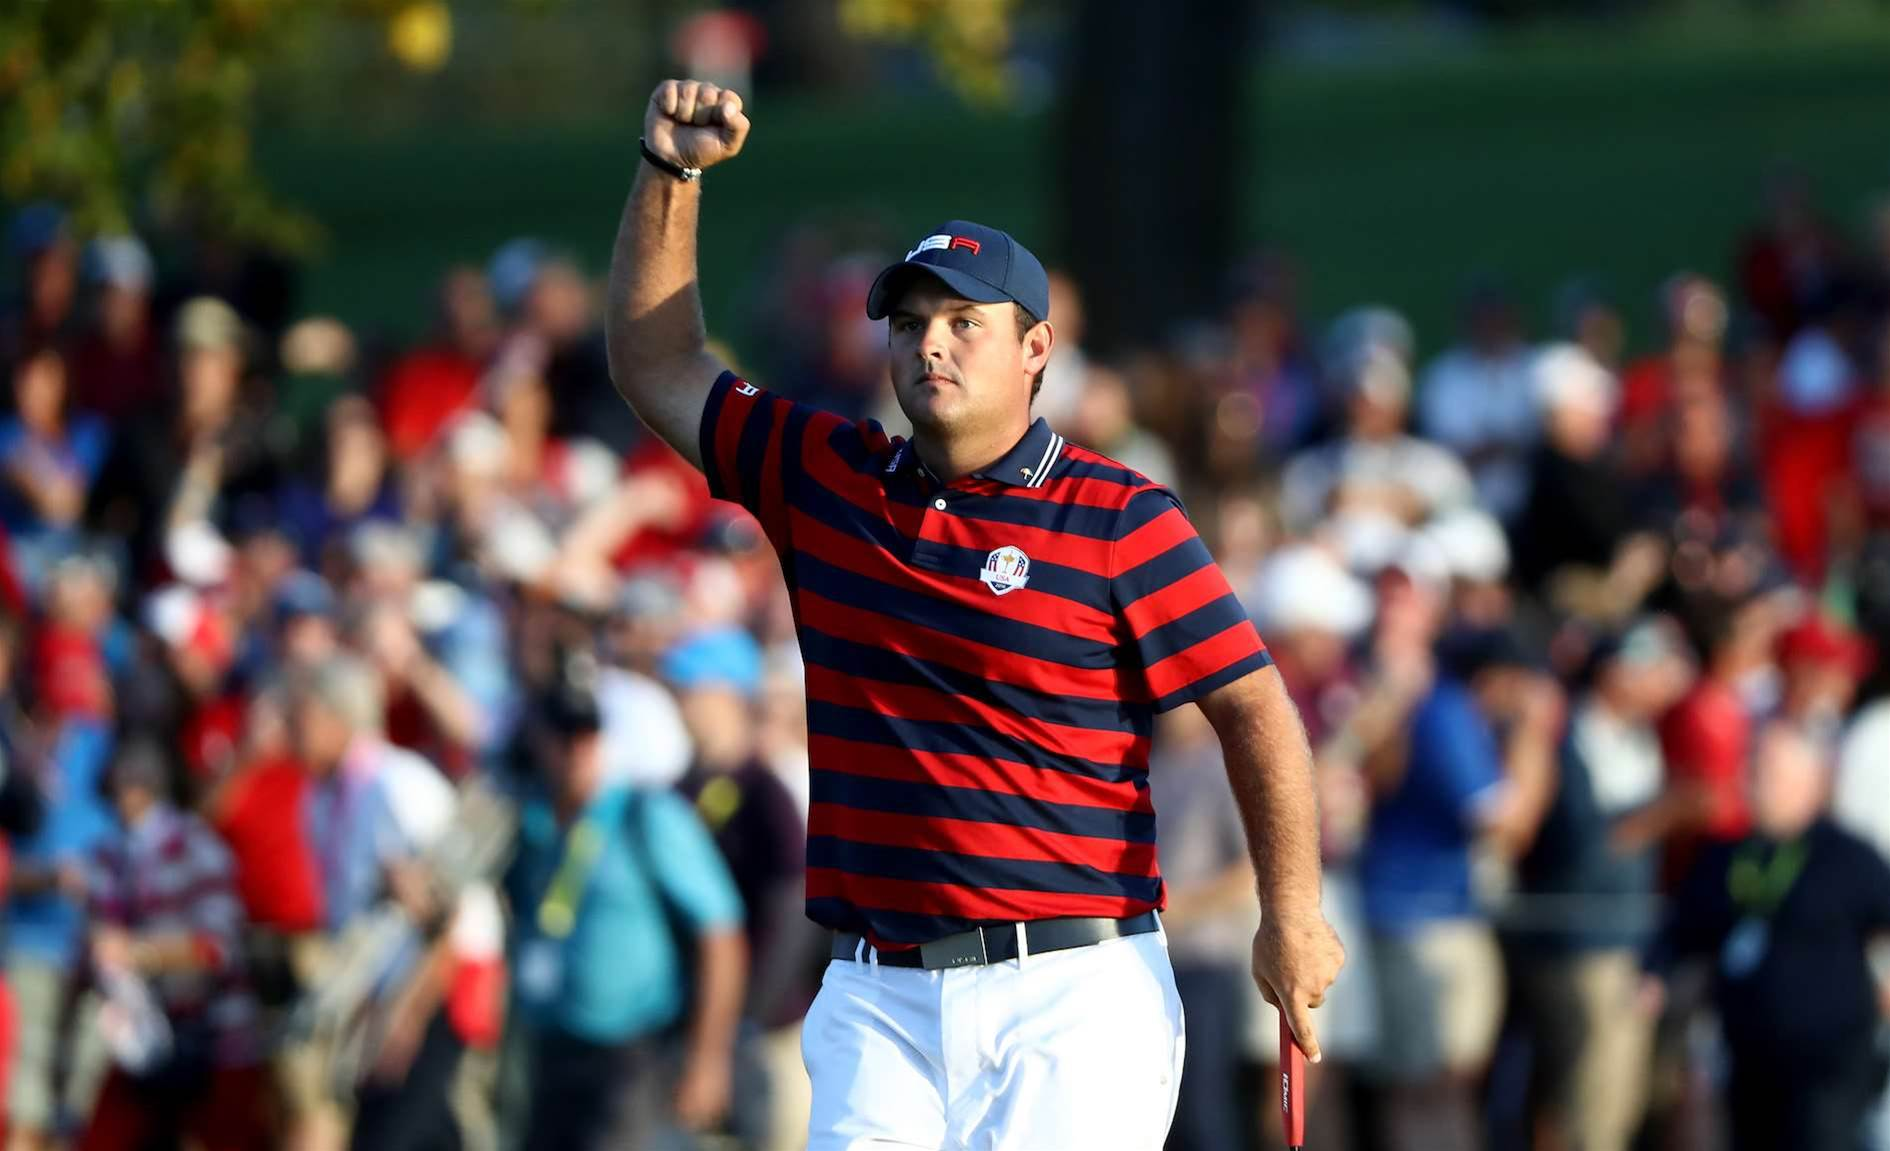 RYDER CUP: Reed inspires U.S to lead rattled Europeans